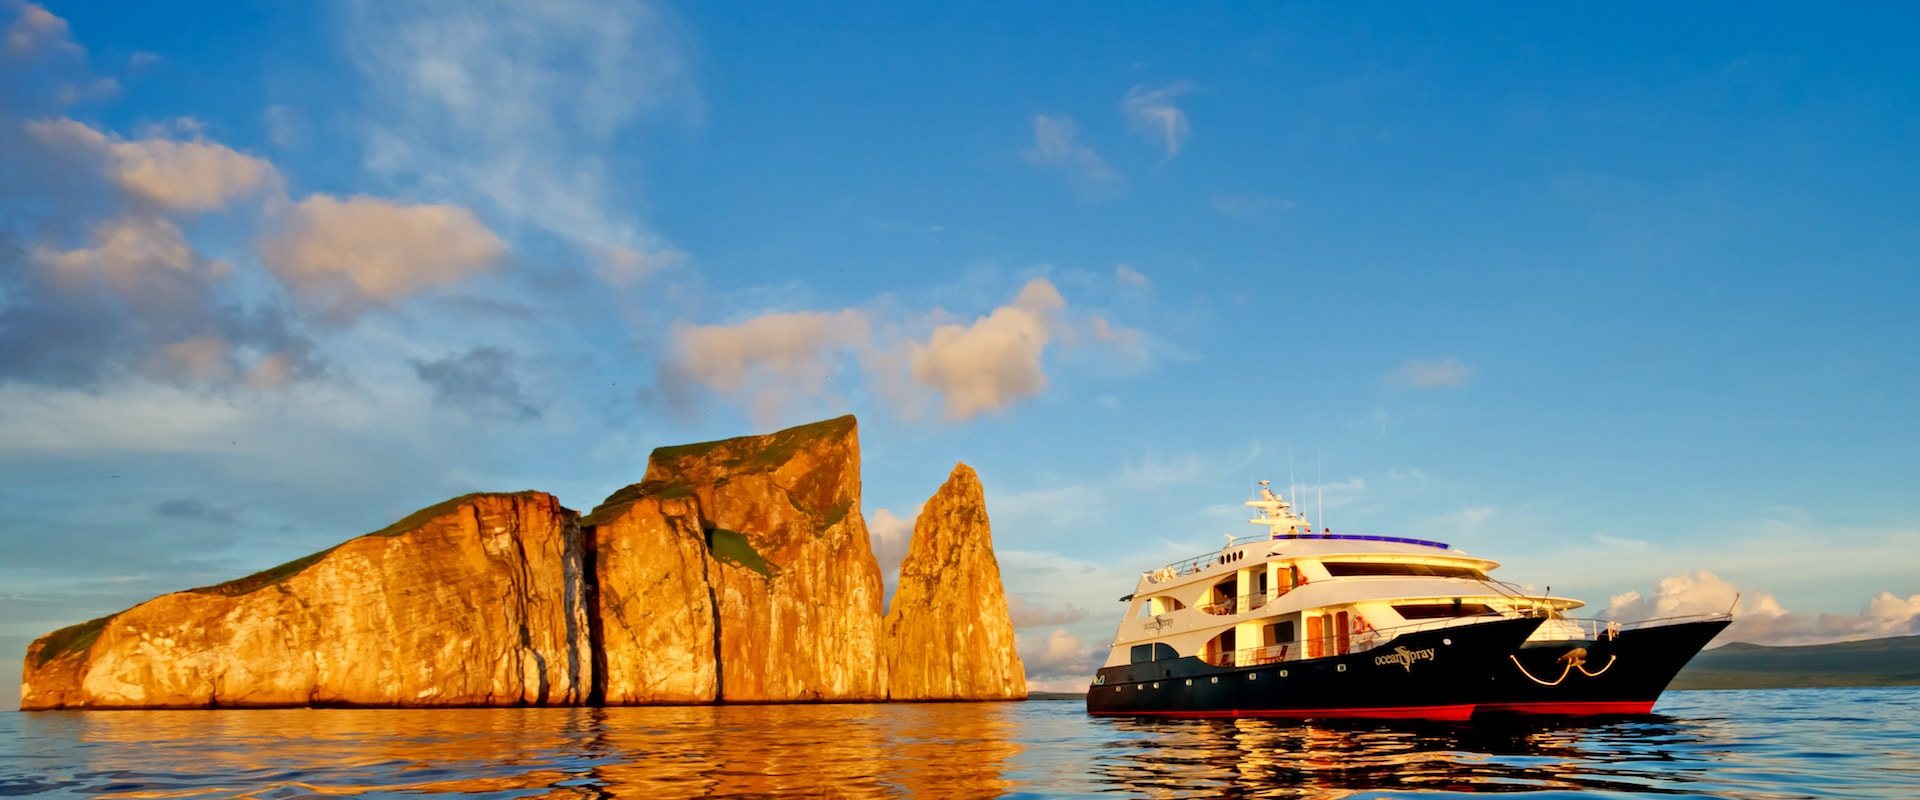 Kicker Rock Adventure Cruises